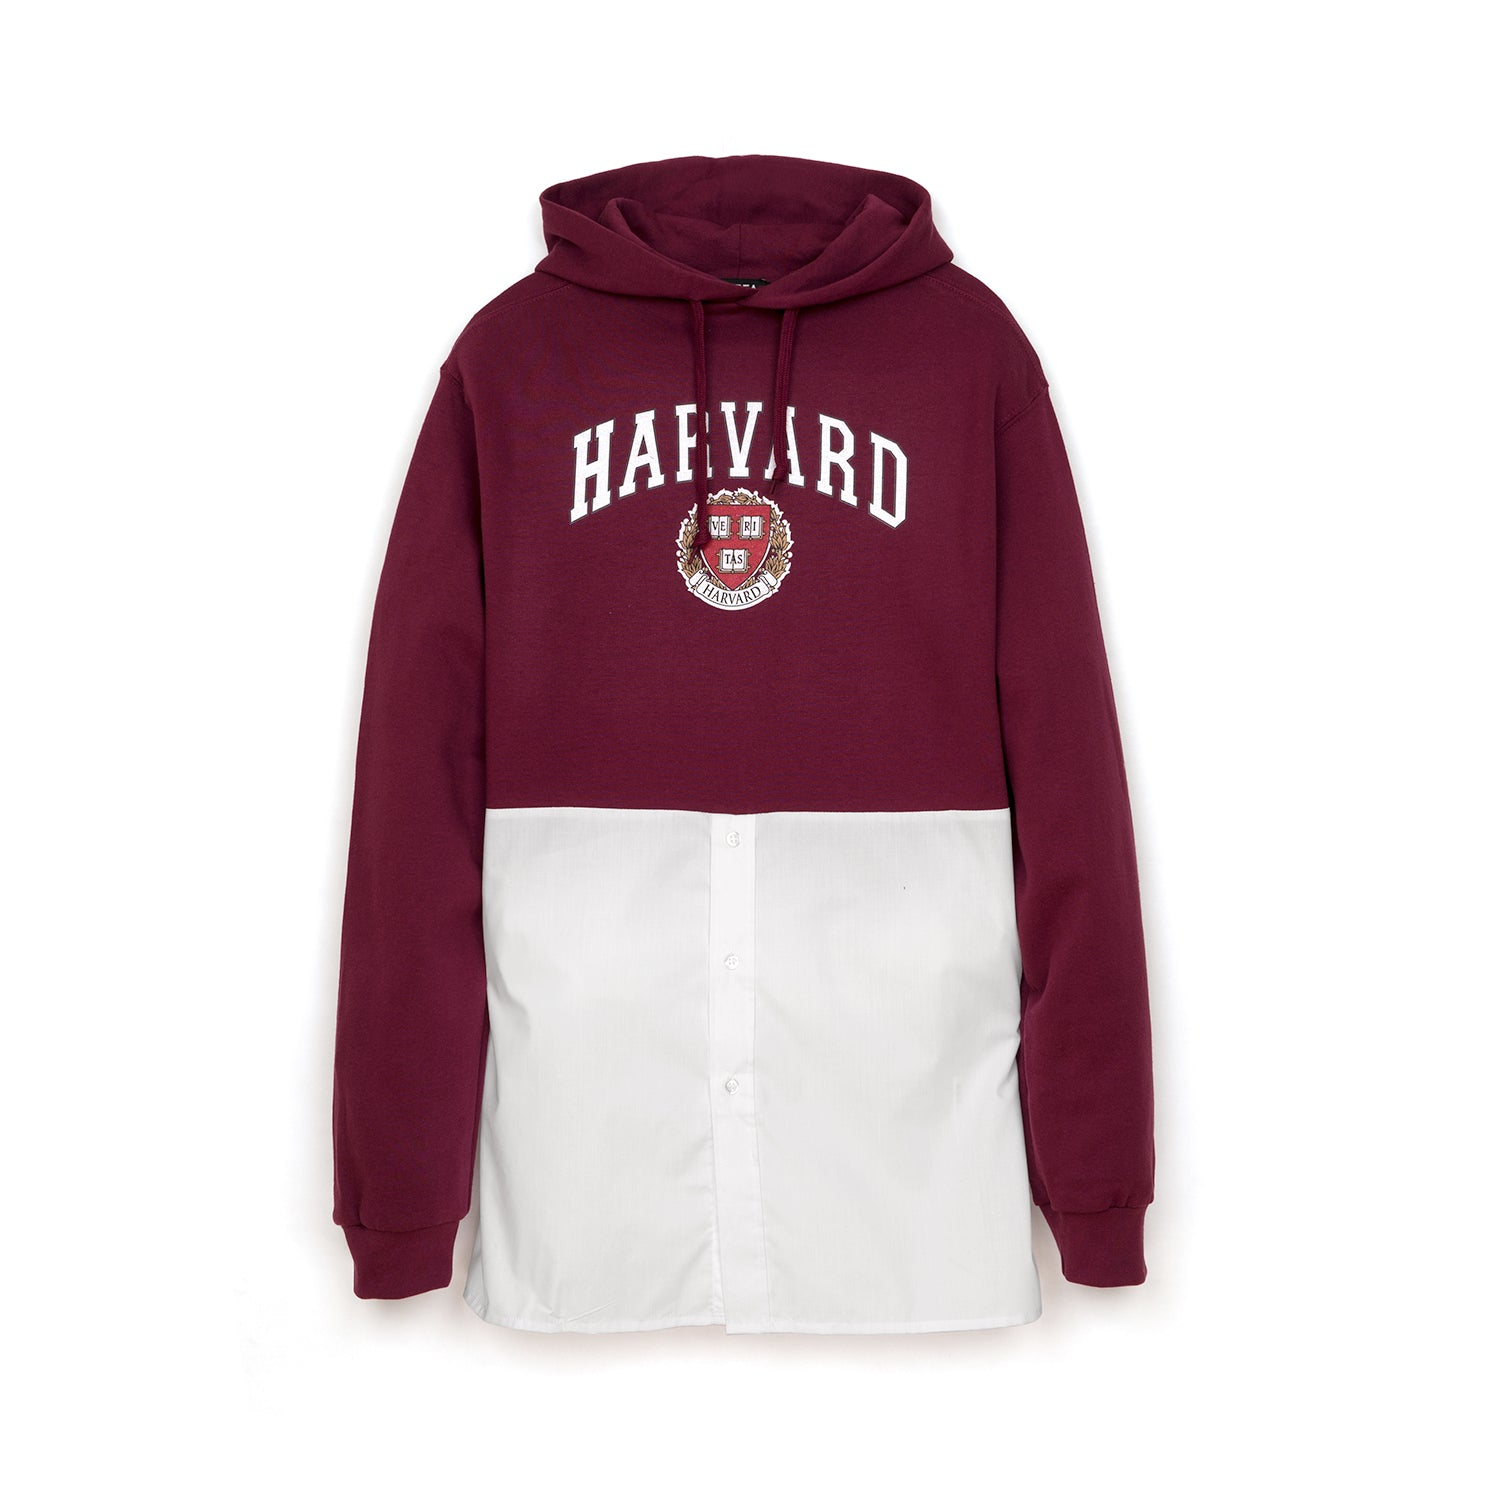 Andrea Crews 'Hilary' Shirt Bottom Hoodie Burgundy